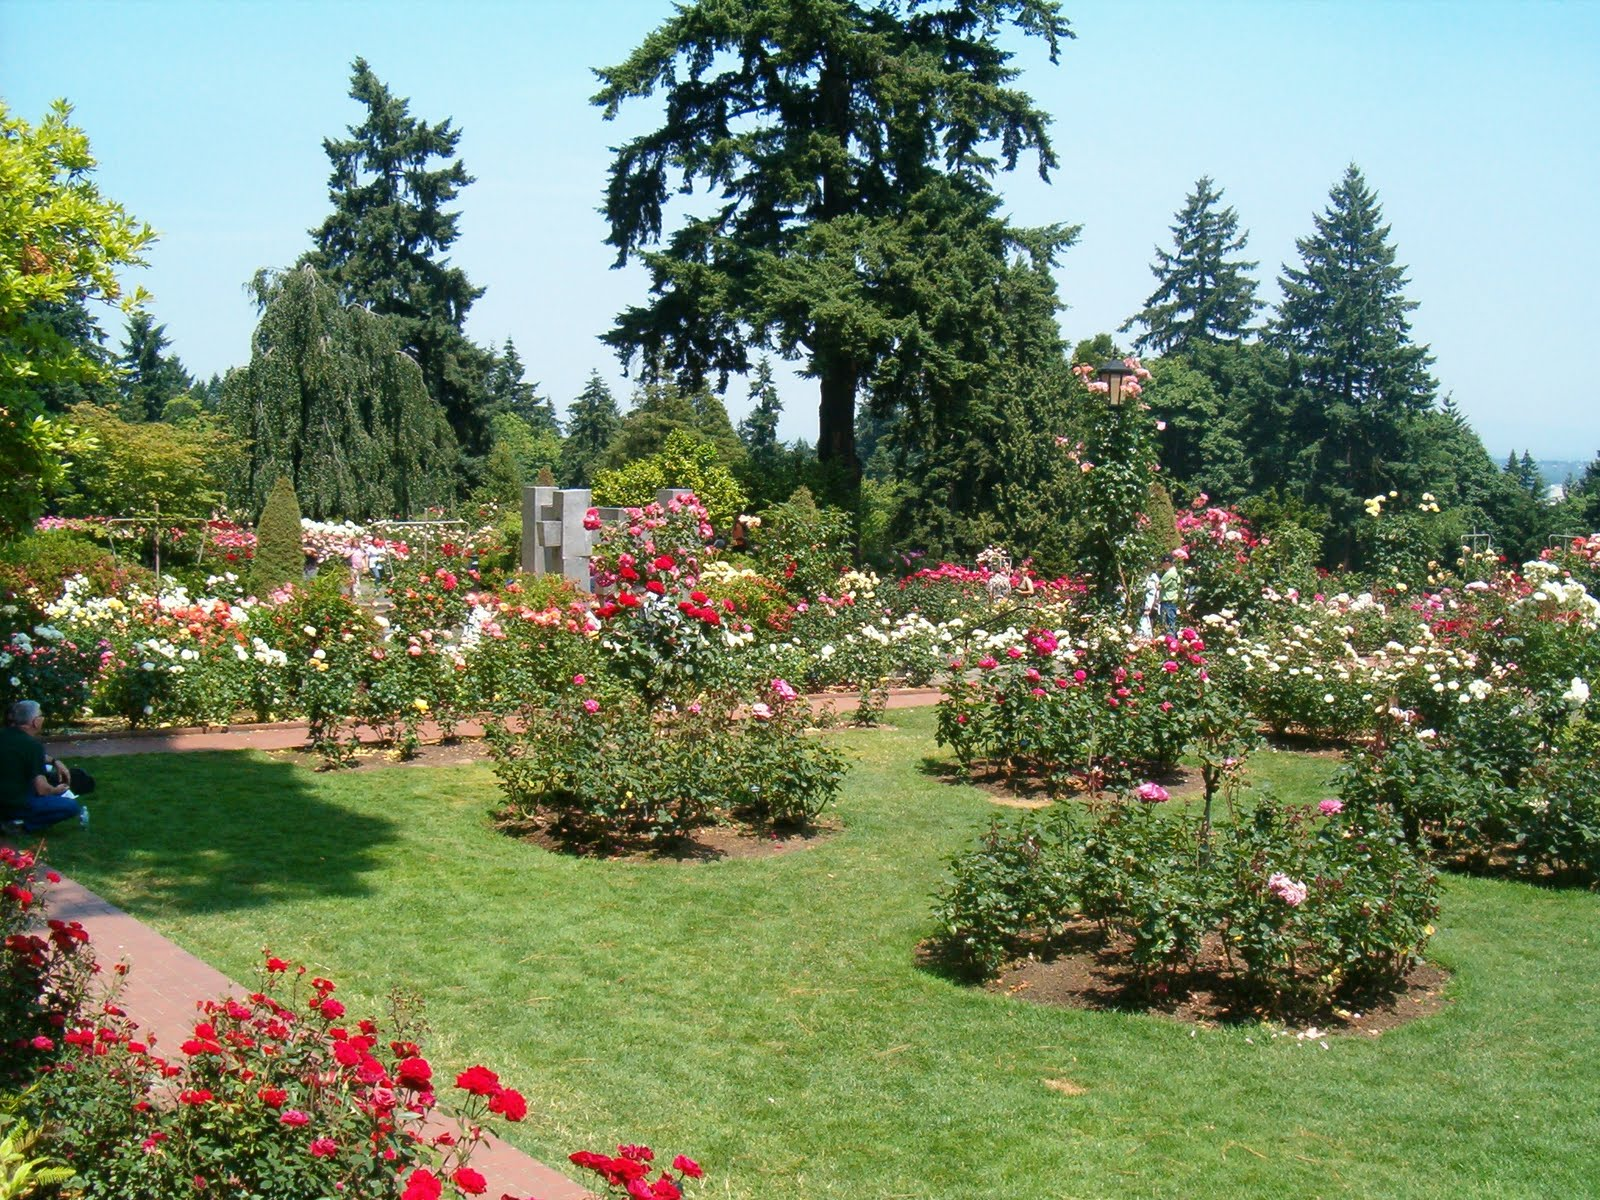 International Rose Test Garden 7 Sights To See In Portland